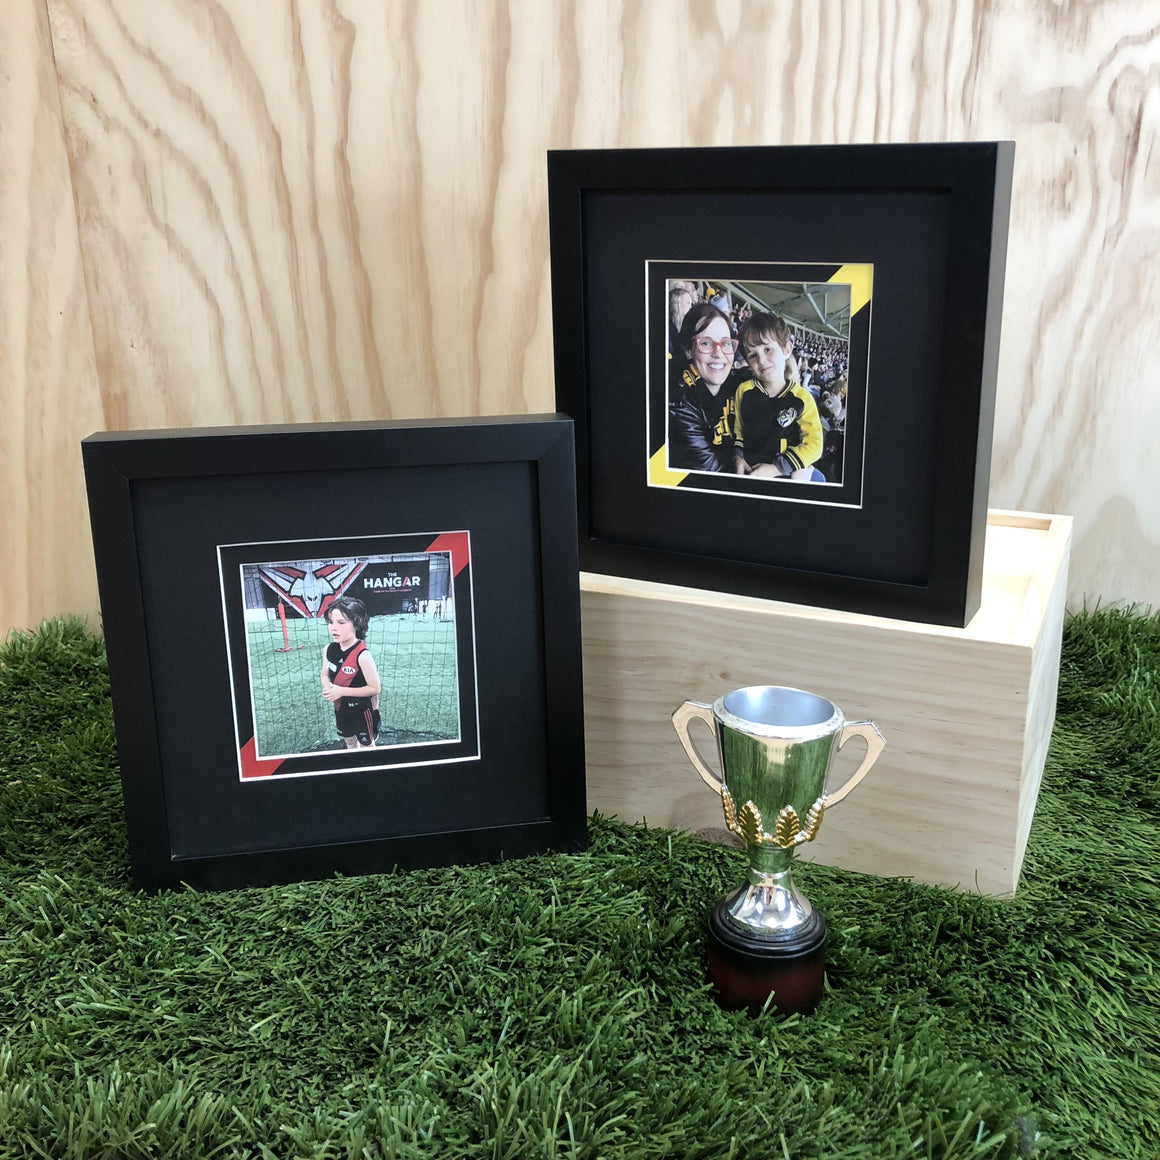 AFL Football, Footy Frames, Footy, Framed Sports Memorabilia, Sports Memorabilia, Western Bulldogs, West Footscray Football Club, Sports Frame, Team Colours, Footy Gift, Sports Gift